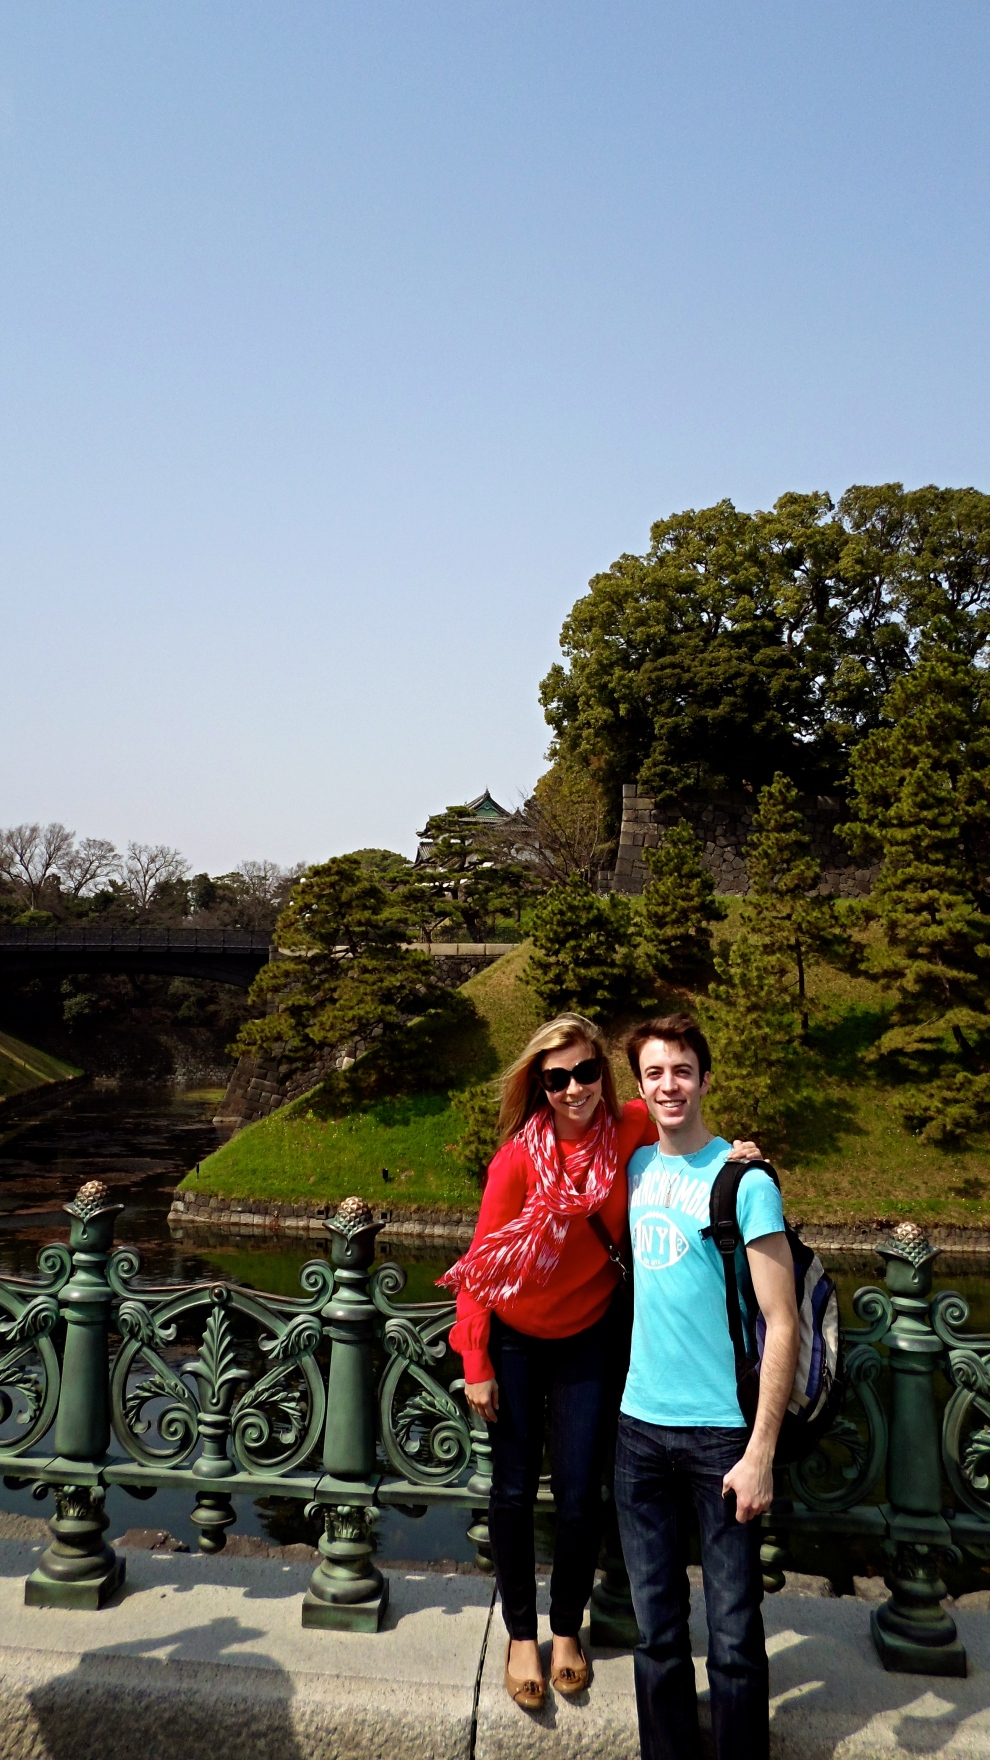 Walking around outside the Imperial Palace Gardens